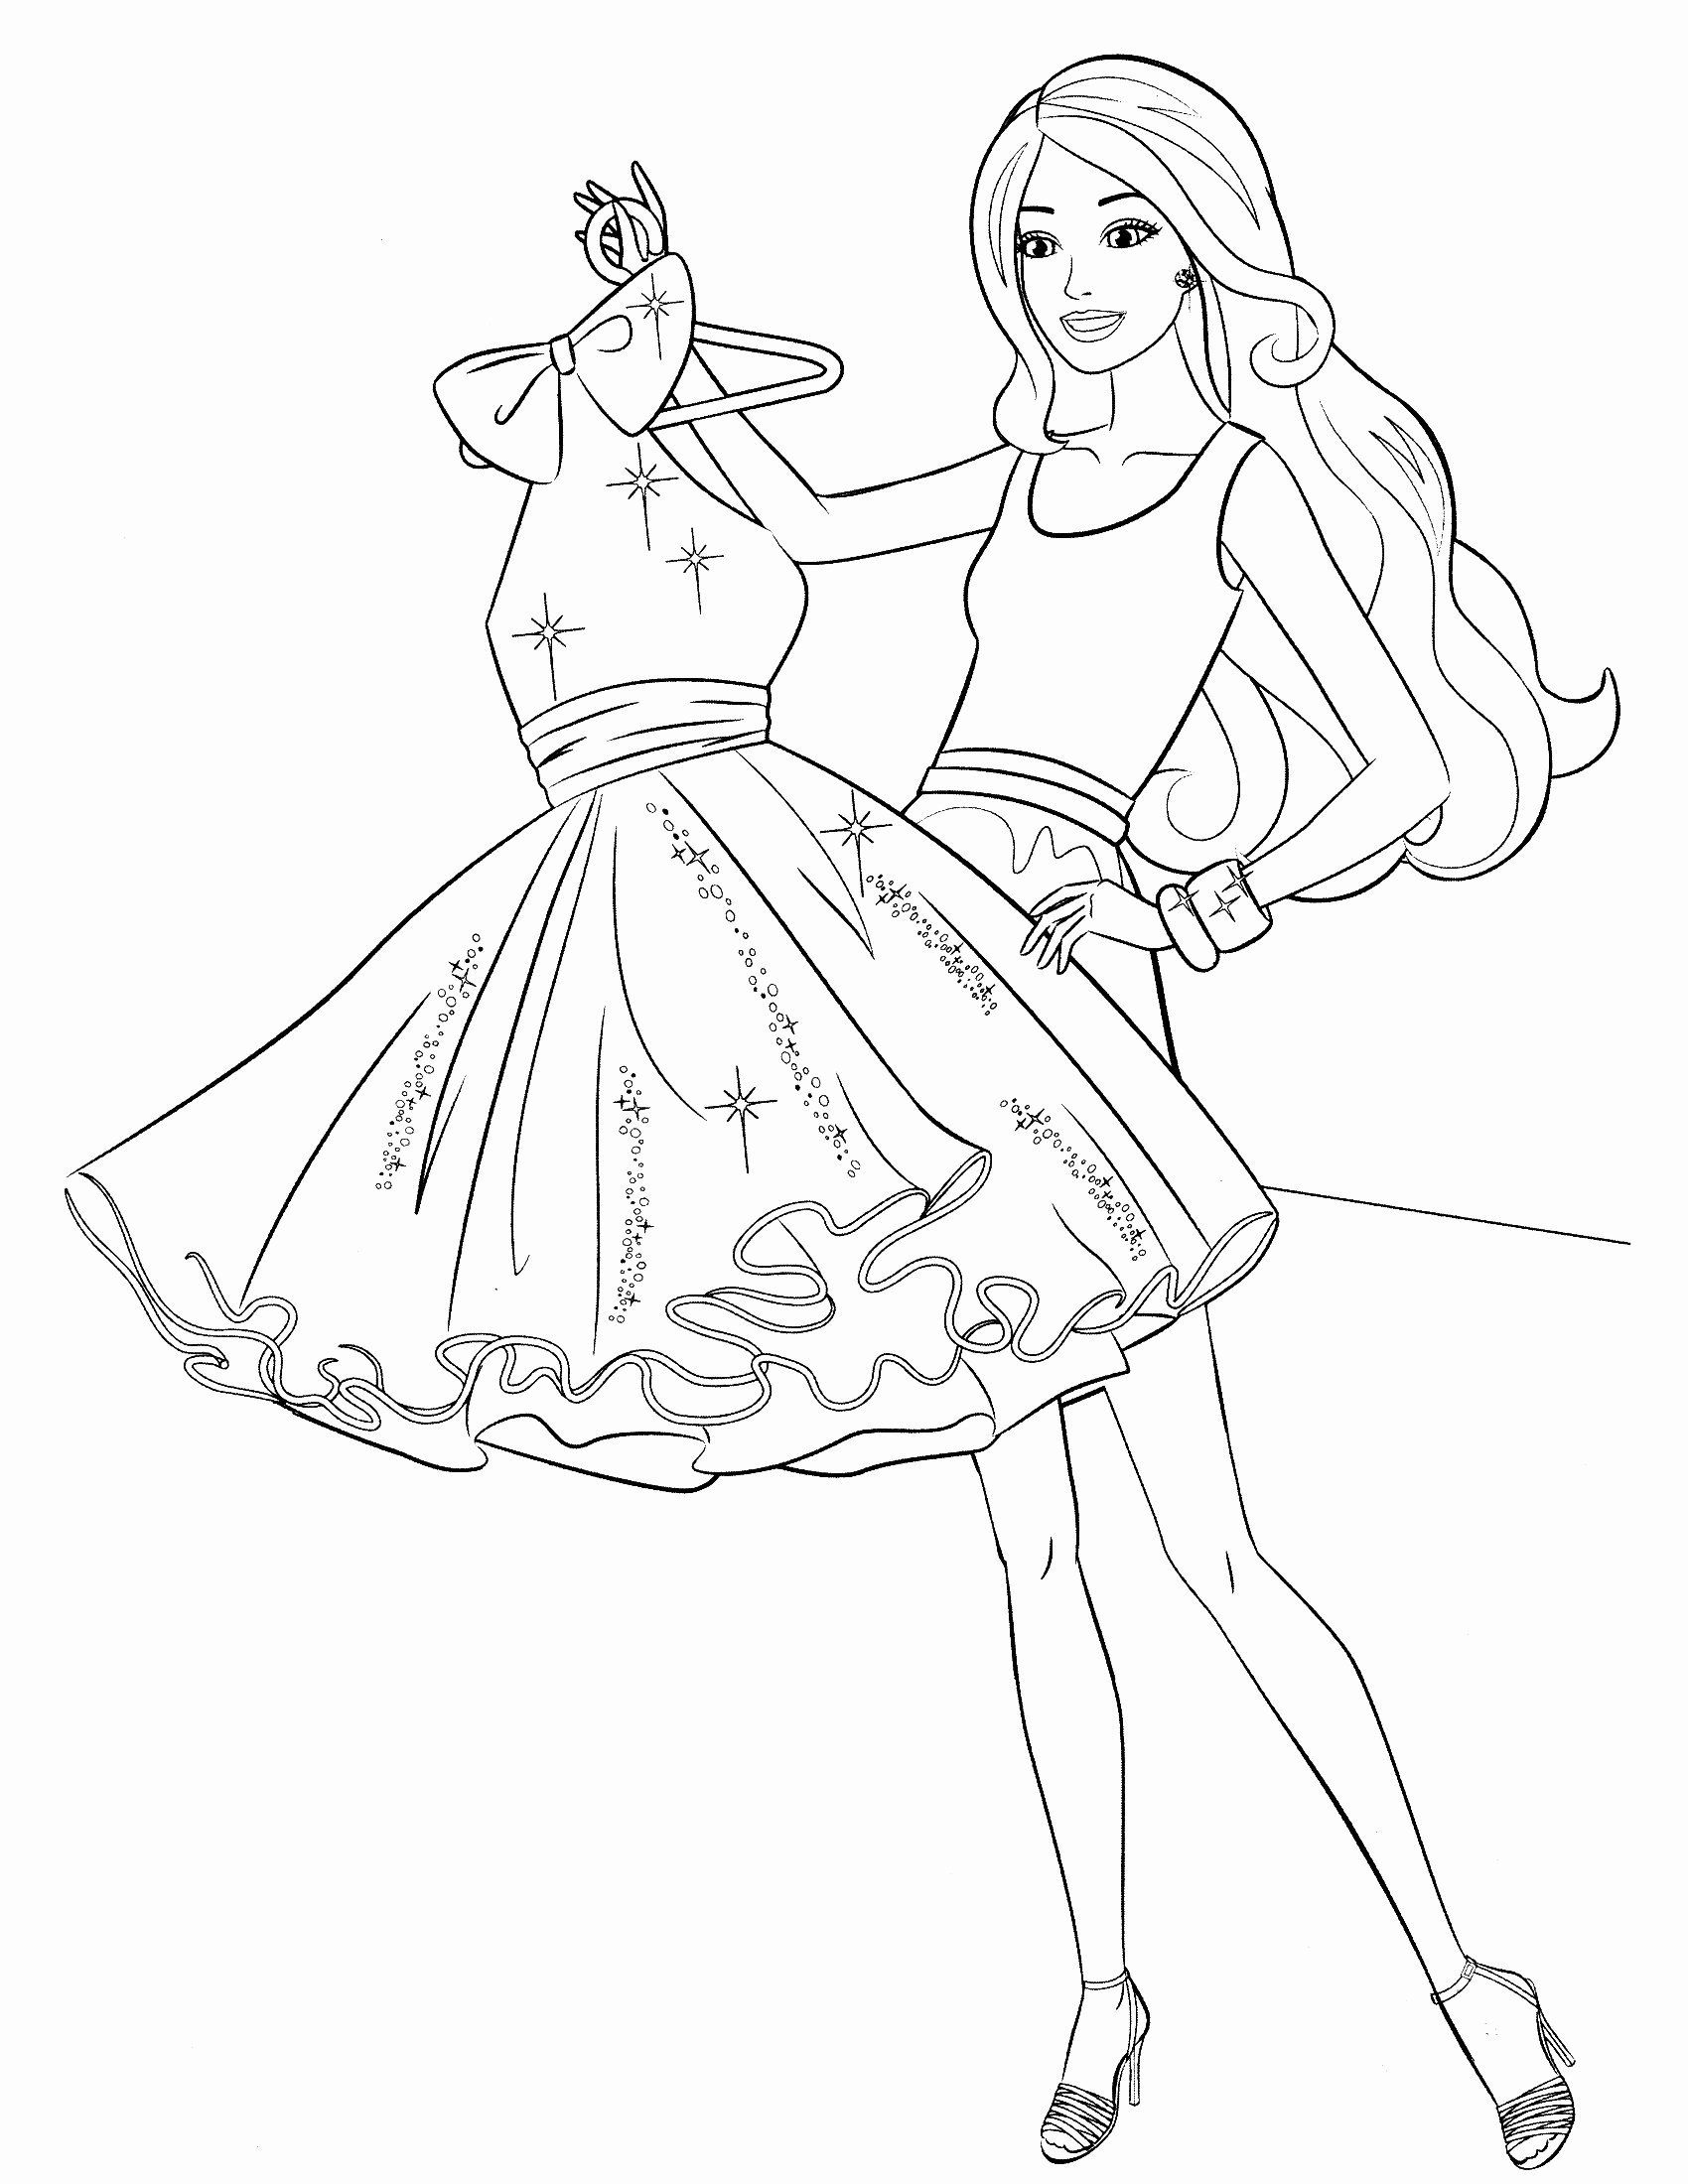 Barbie Fashion Coloring Book Inspirational Barbie Coloring Pages Pdf Barbie Coloring Pages Barbie Coloring Fashion Coloring Book